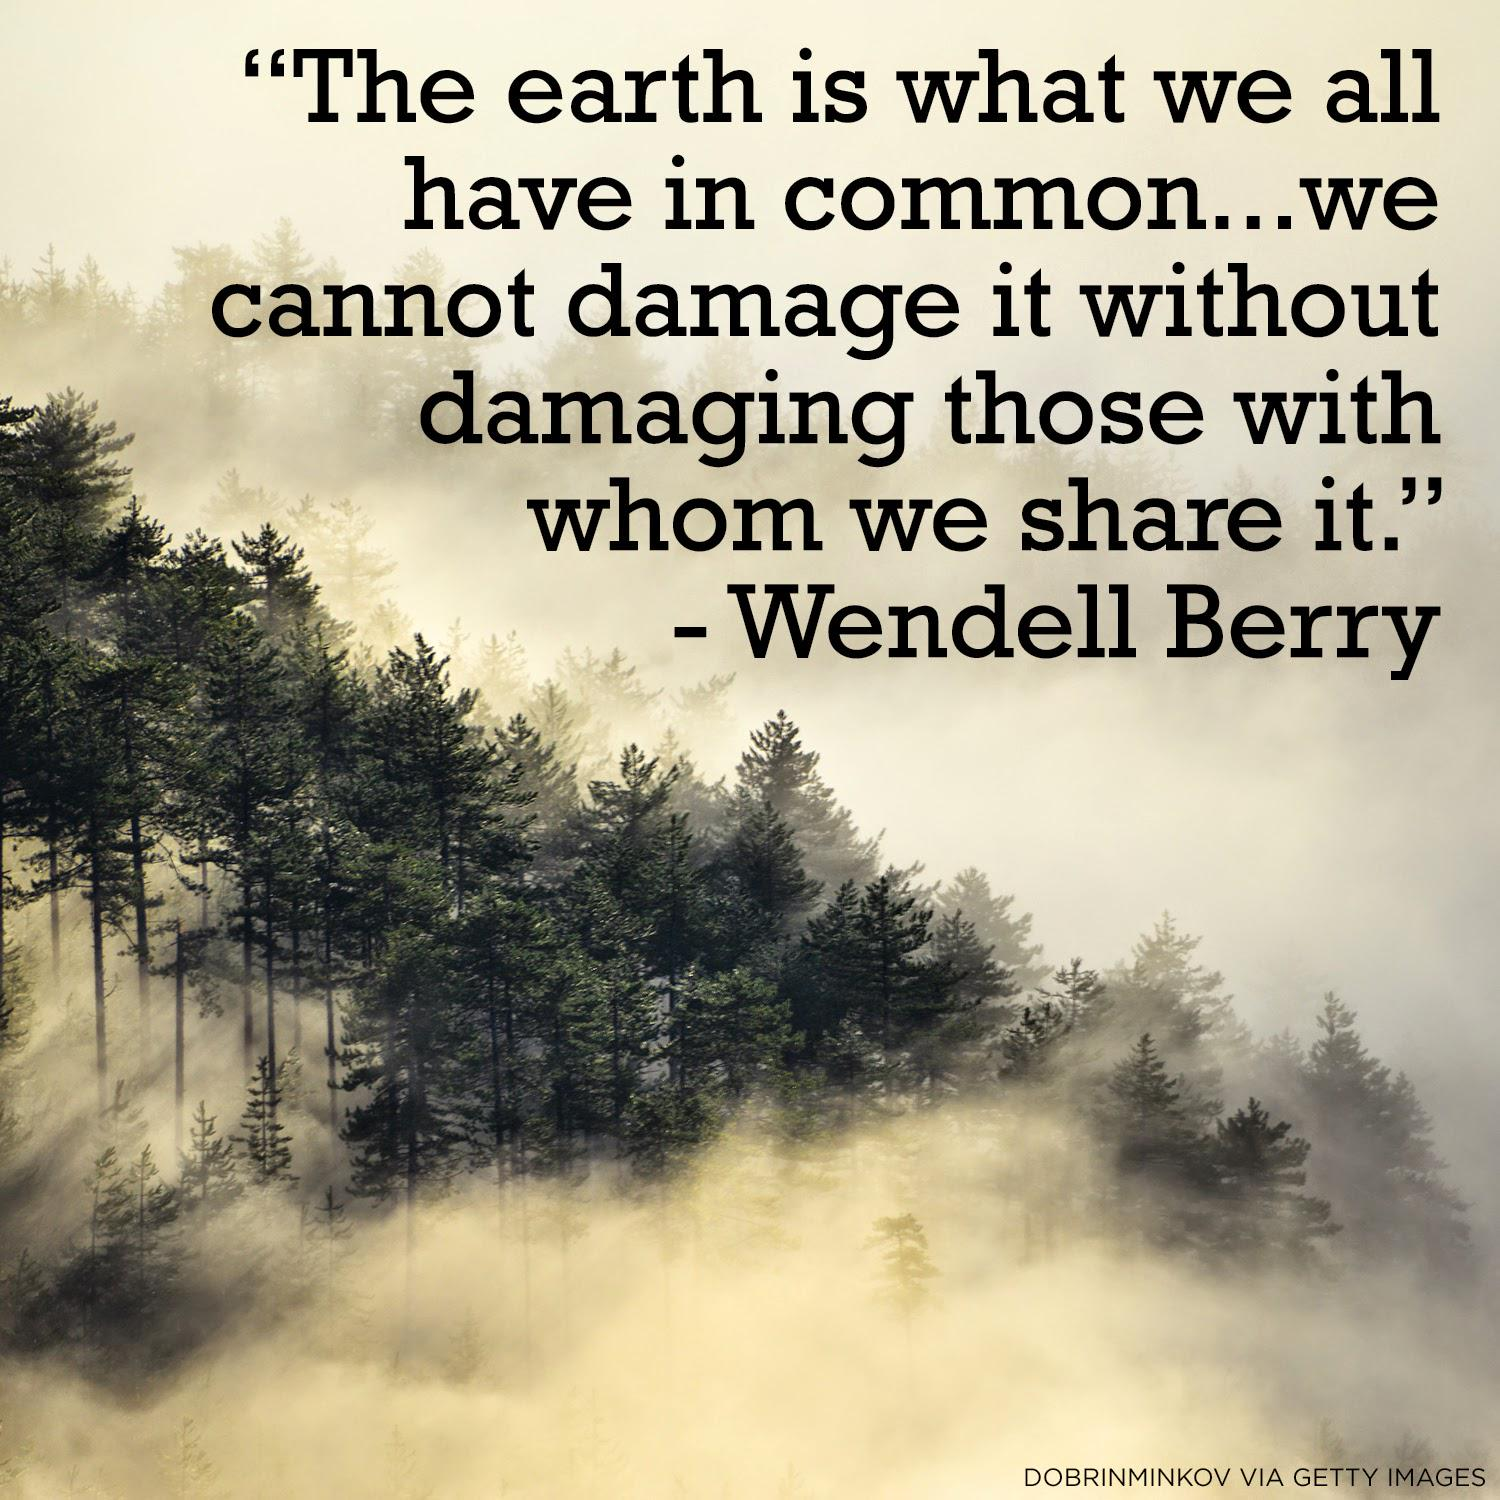 """Arianna Huffington on Twitter: """"""""The earth is what we all have in common."""" - Wendell Berry #EarthDay http://t.co/1wPXVIjJEb"""""""